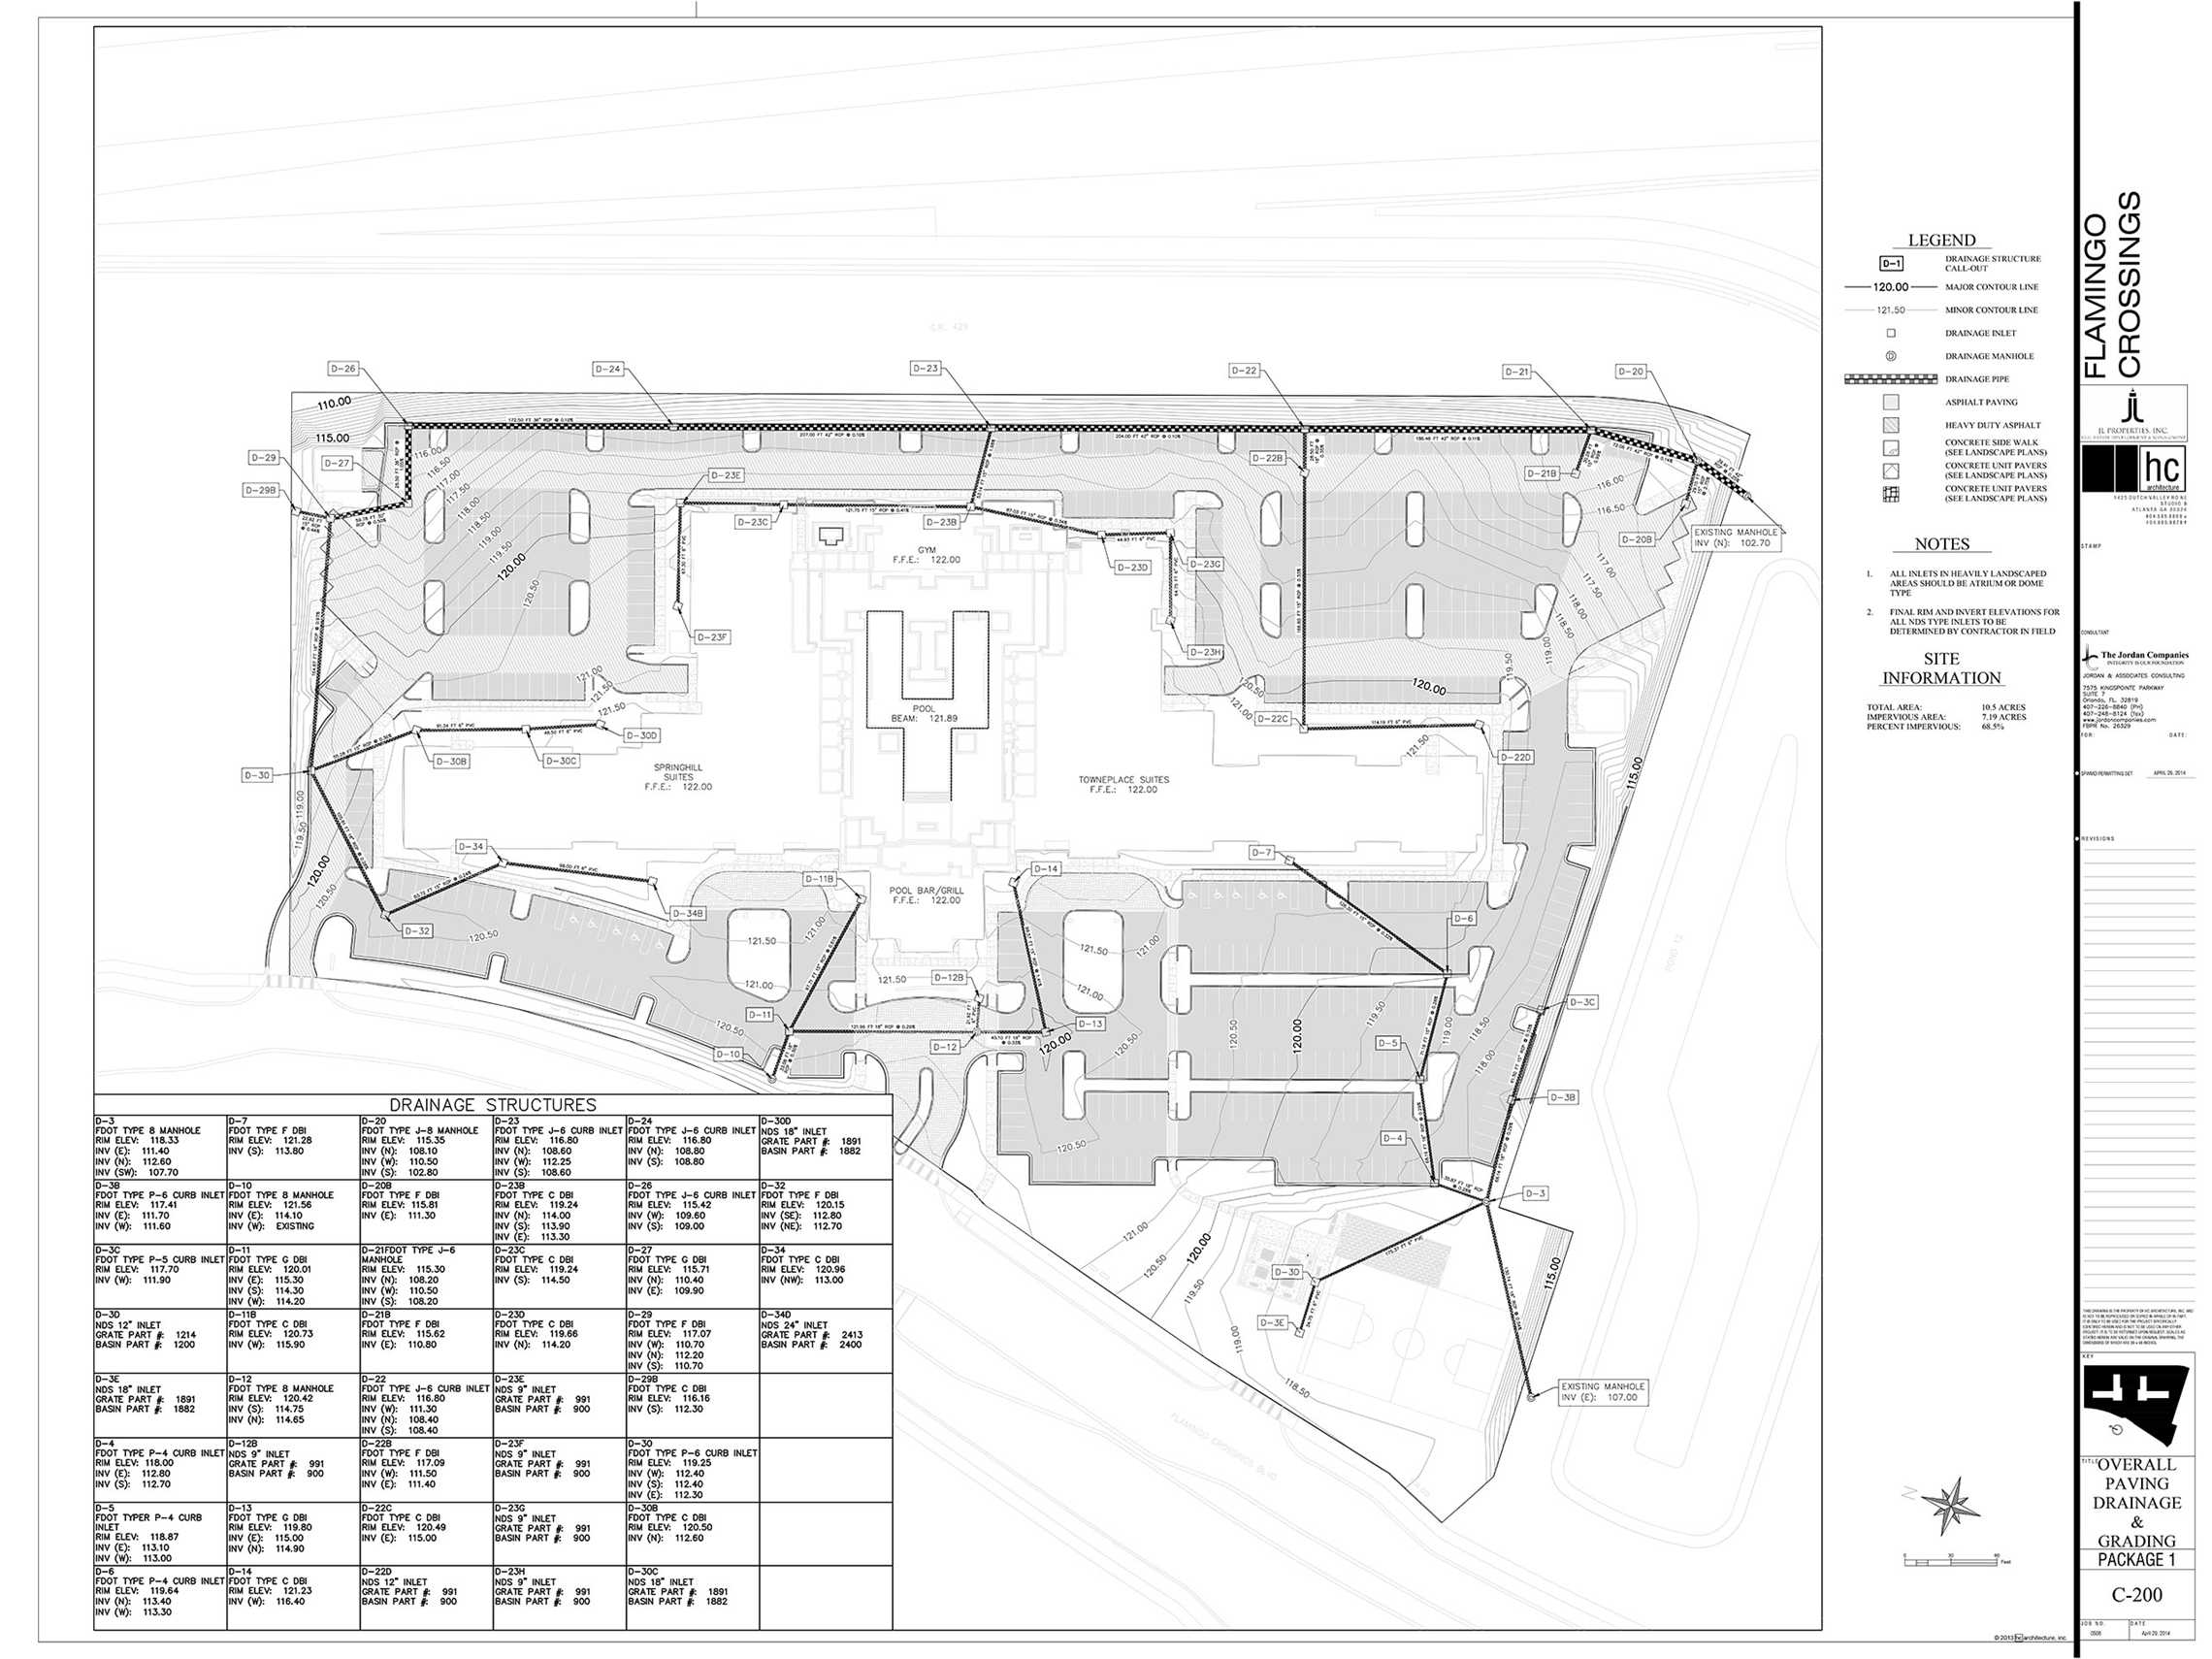 TownePlace Suites by Marriott' and 'SpringHill Suites by Marriott' at Flamingo Crossings